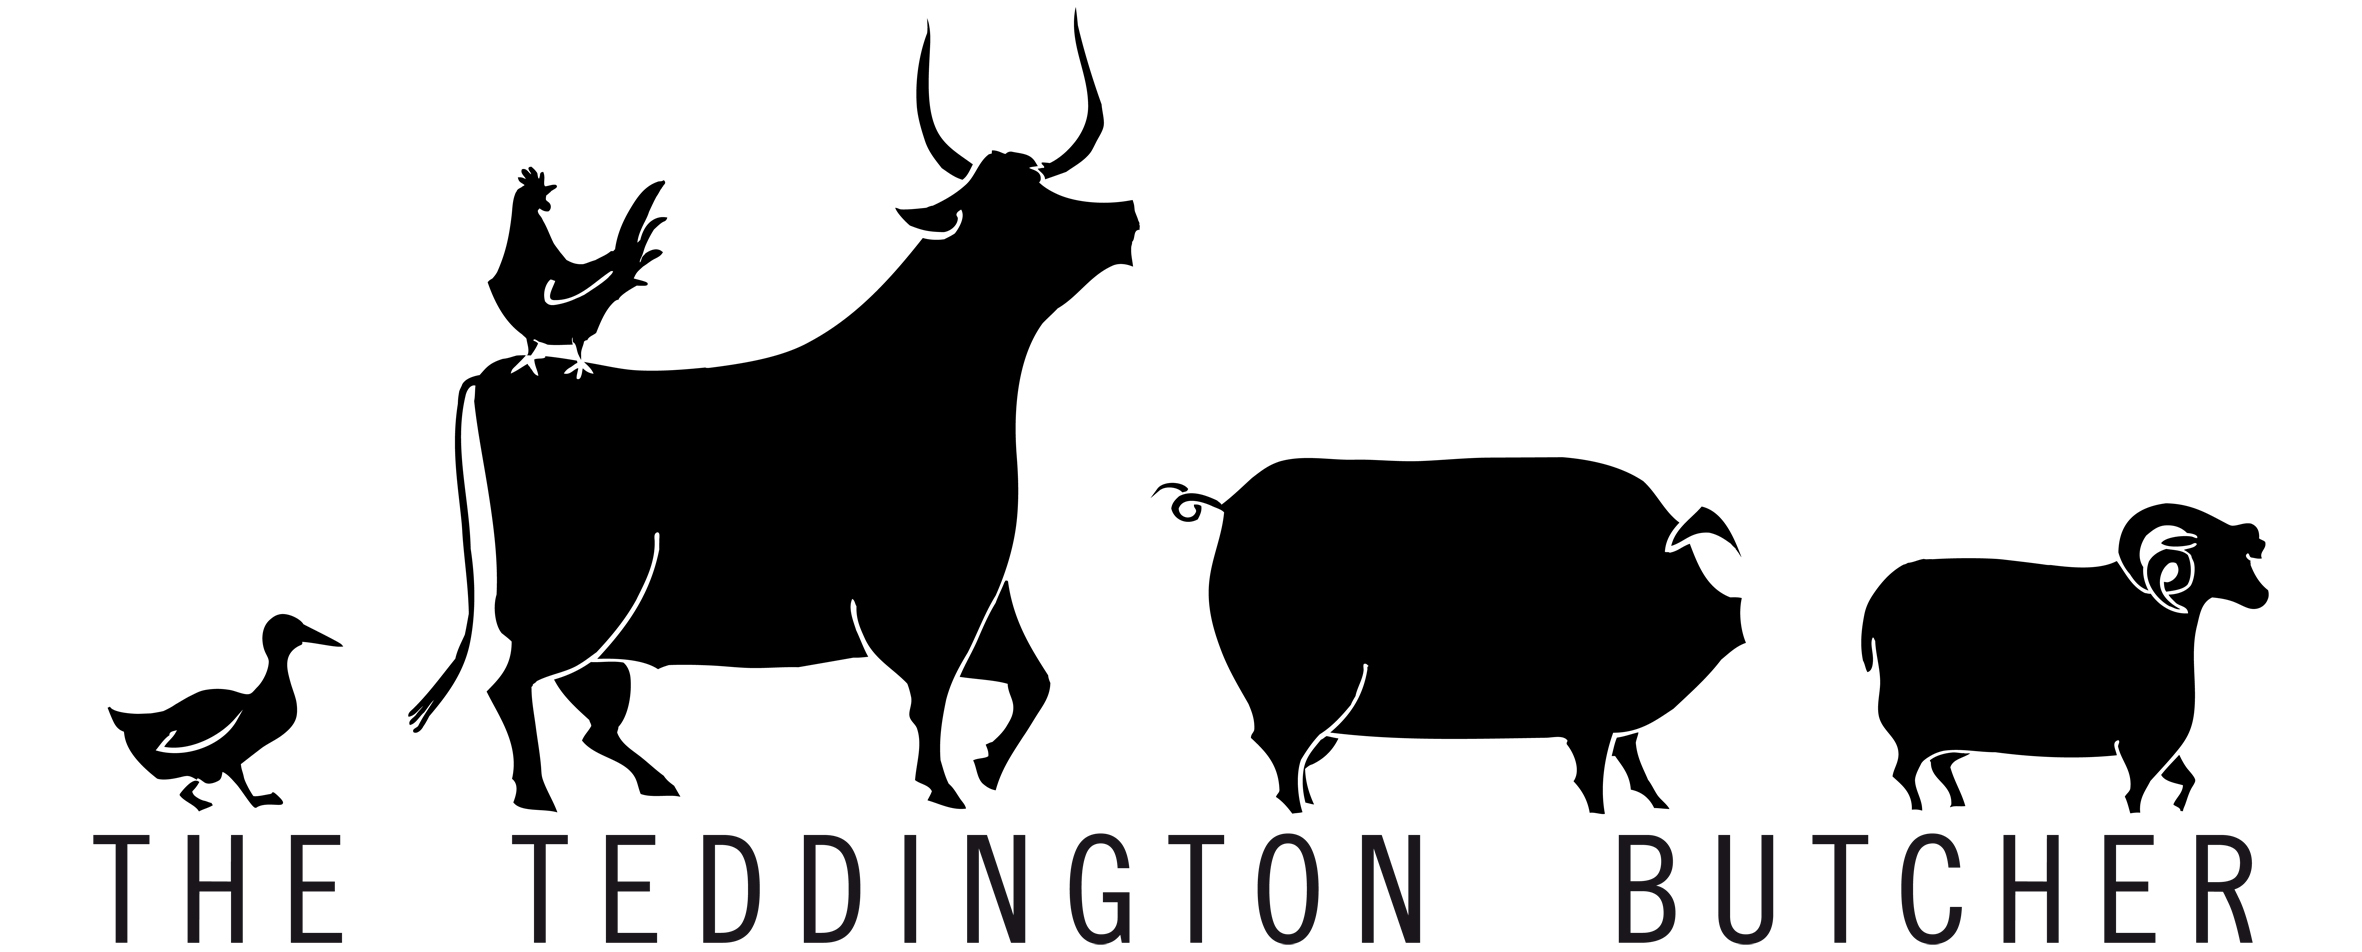 The Teddington Butcher Logo and re-branding project